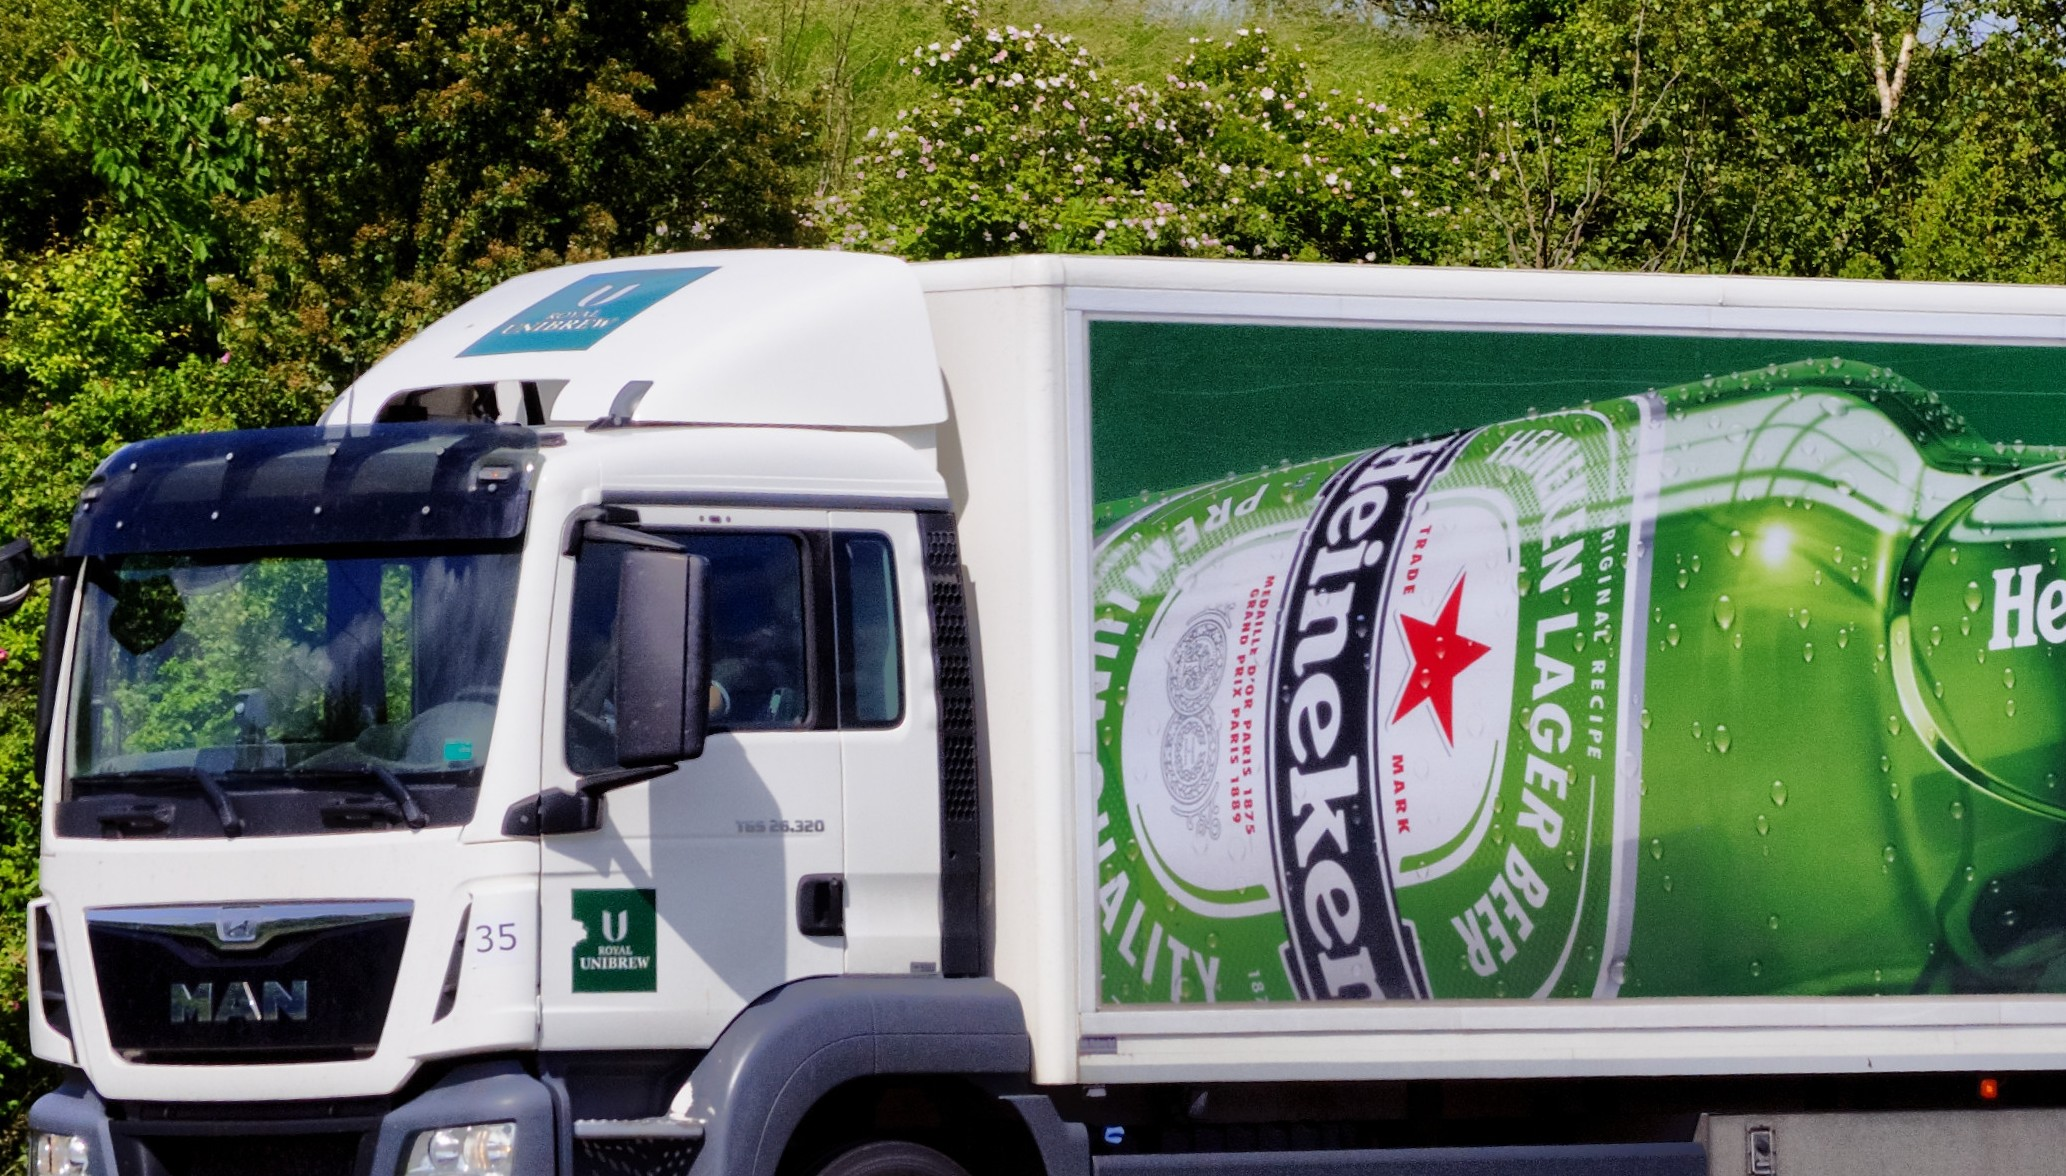 Driver shortage: Kent pub running dry as Heineken UK faces 3PL delivery issues